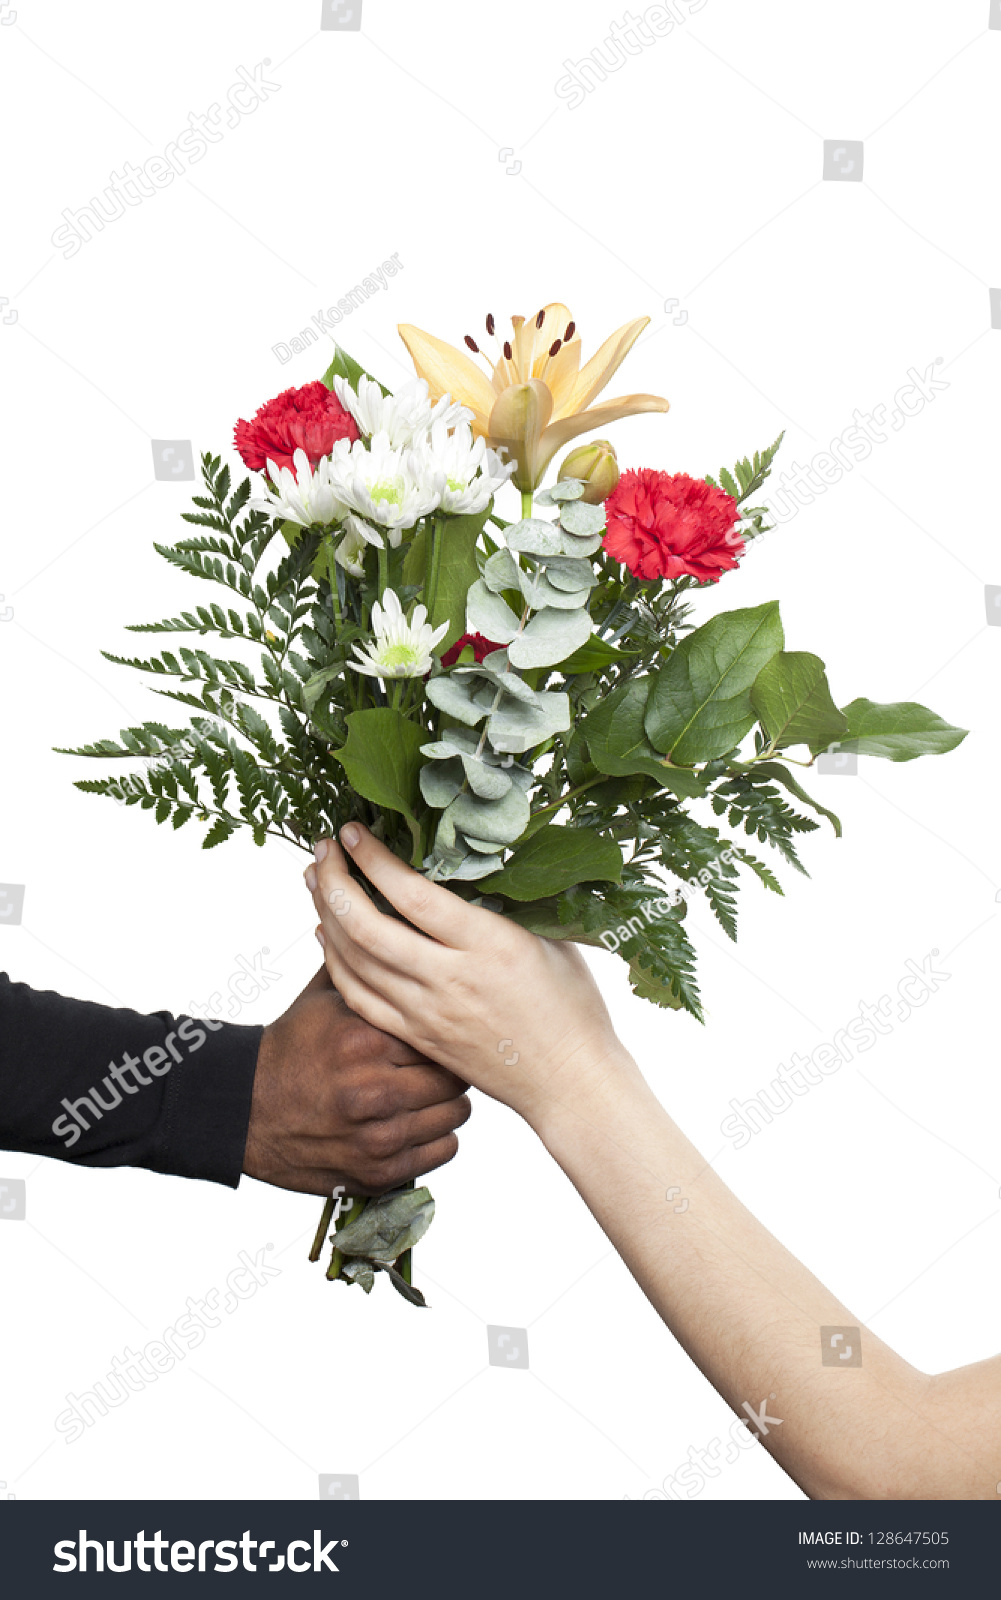 Arm Man Giving Bouquet Colorful Flowers Stock Photo & Image (Royalty ...